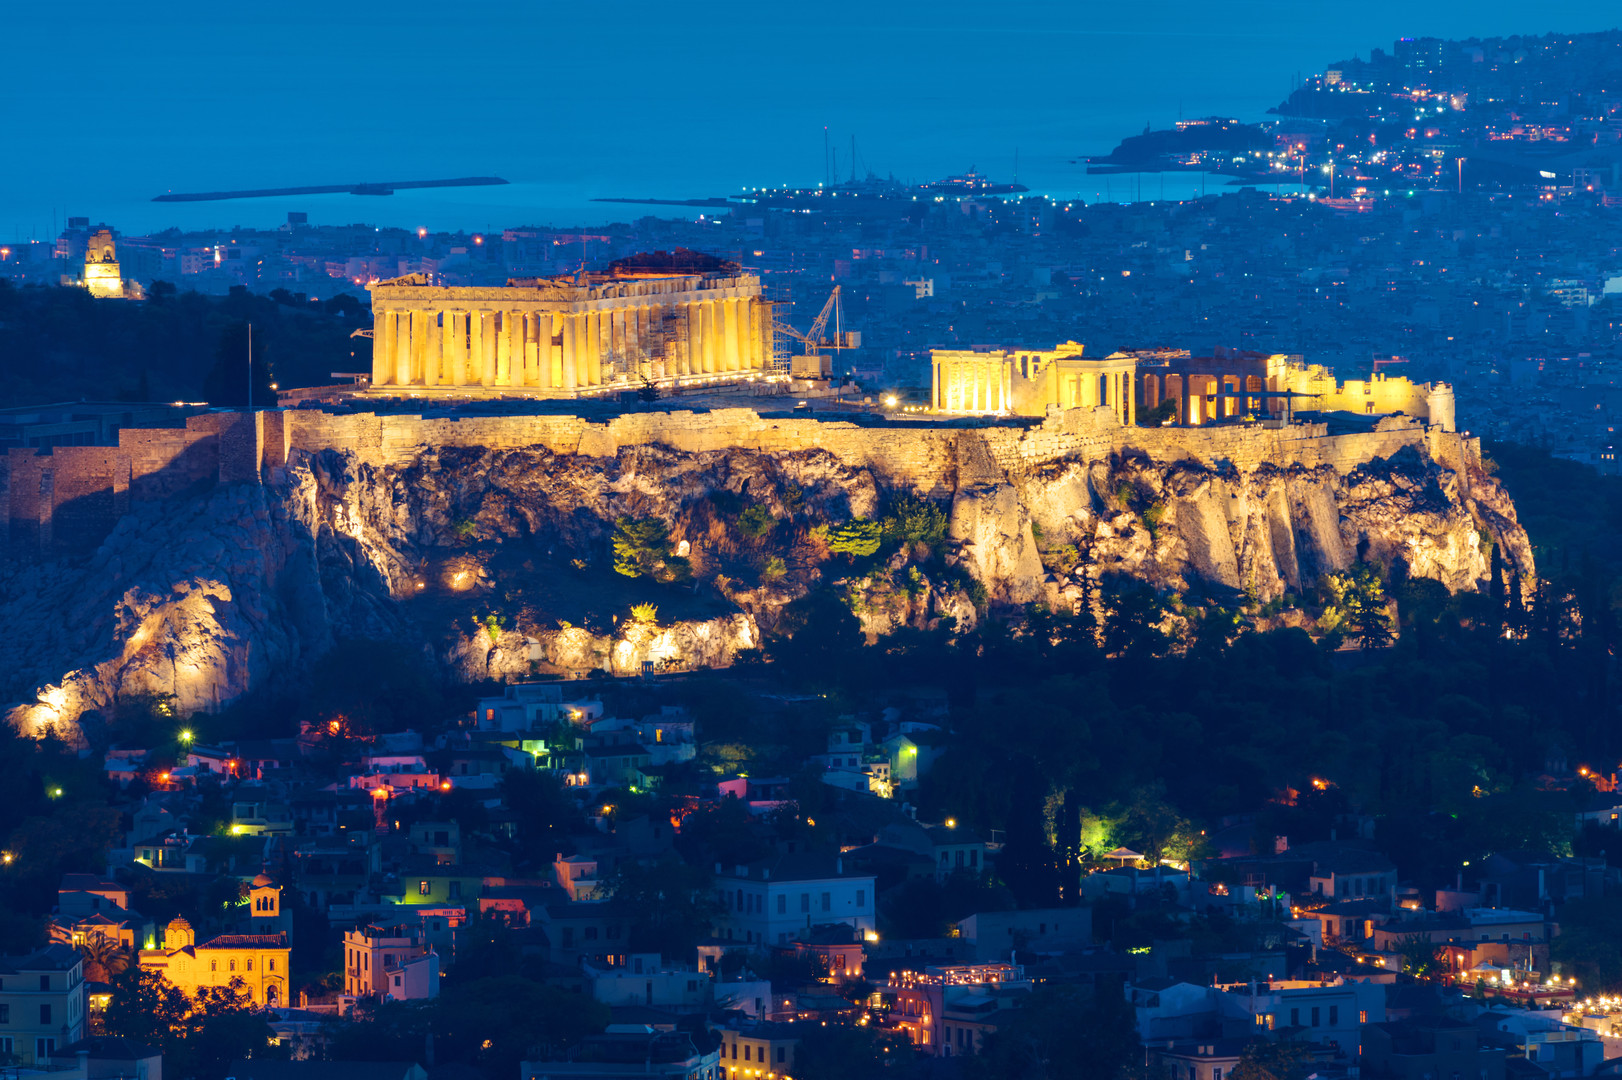 athens-at-night-PM8WJDW.jpg